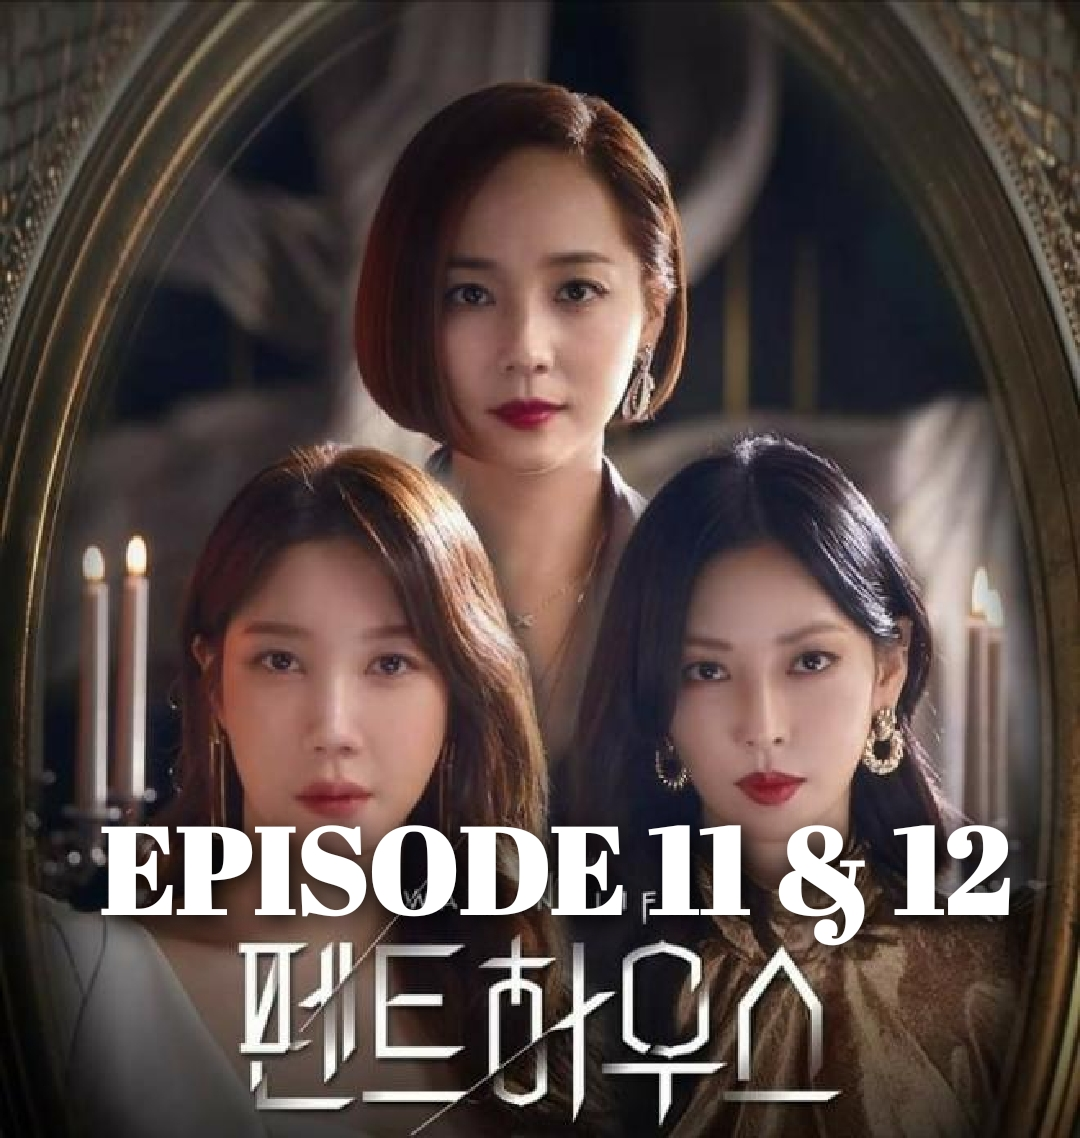 Sinopsis The Penthouse 2 Episode 11 & 12